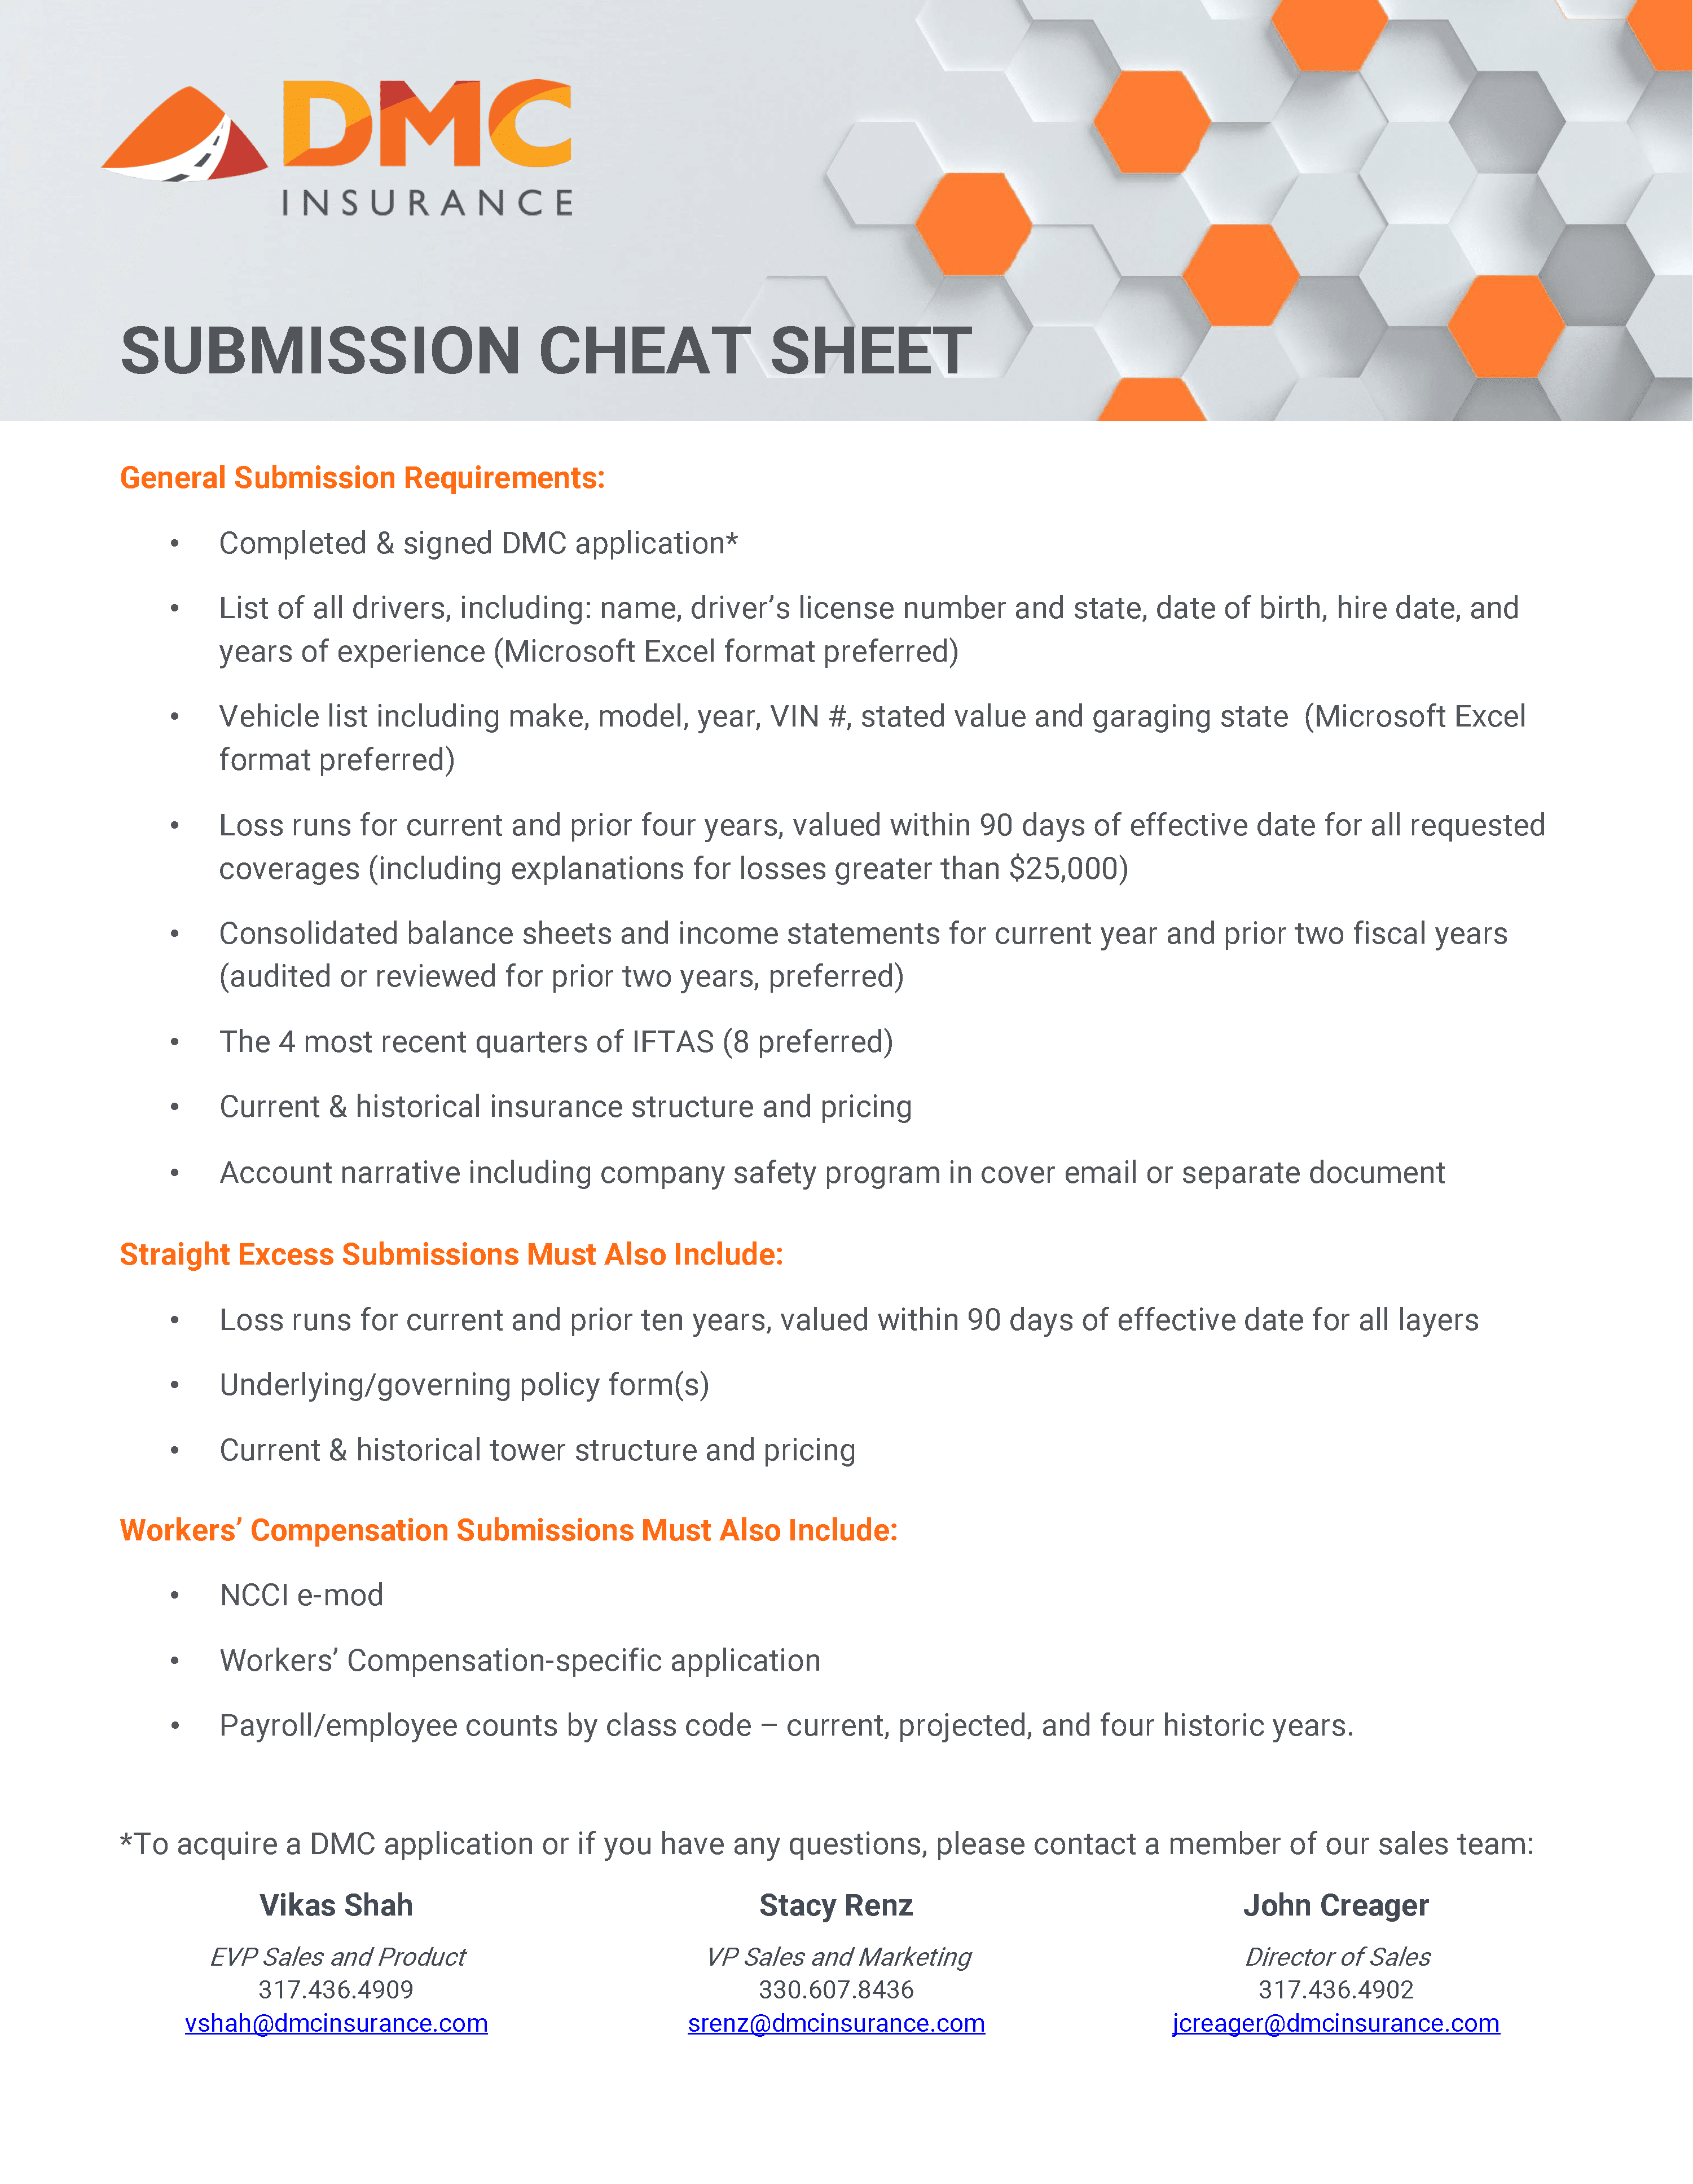 Submission Cheat Sheet